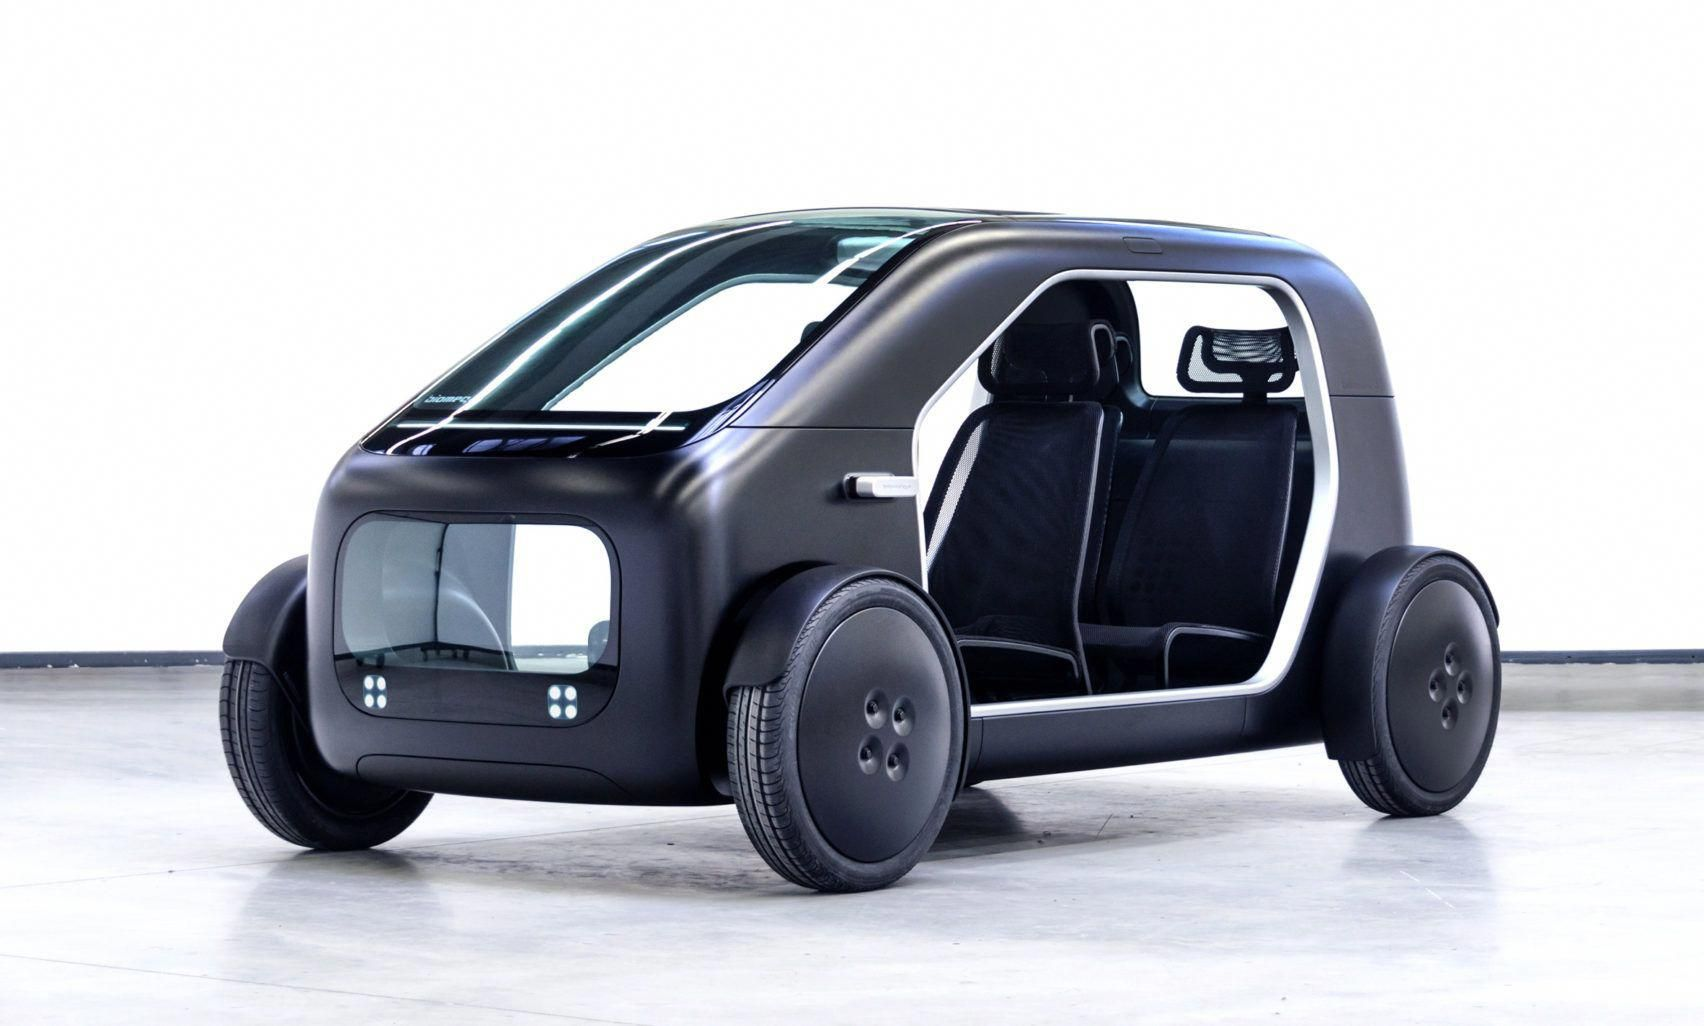 Figure Out More Details On Electric Cars Have A Look At Our Web Site Electric Cars Electric Car Concept Electric Car Design